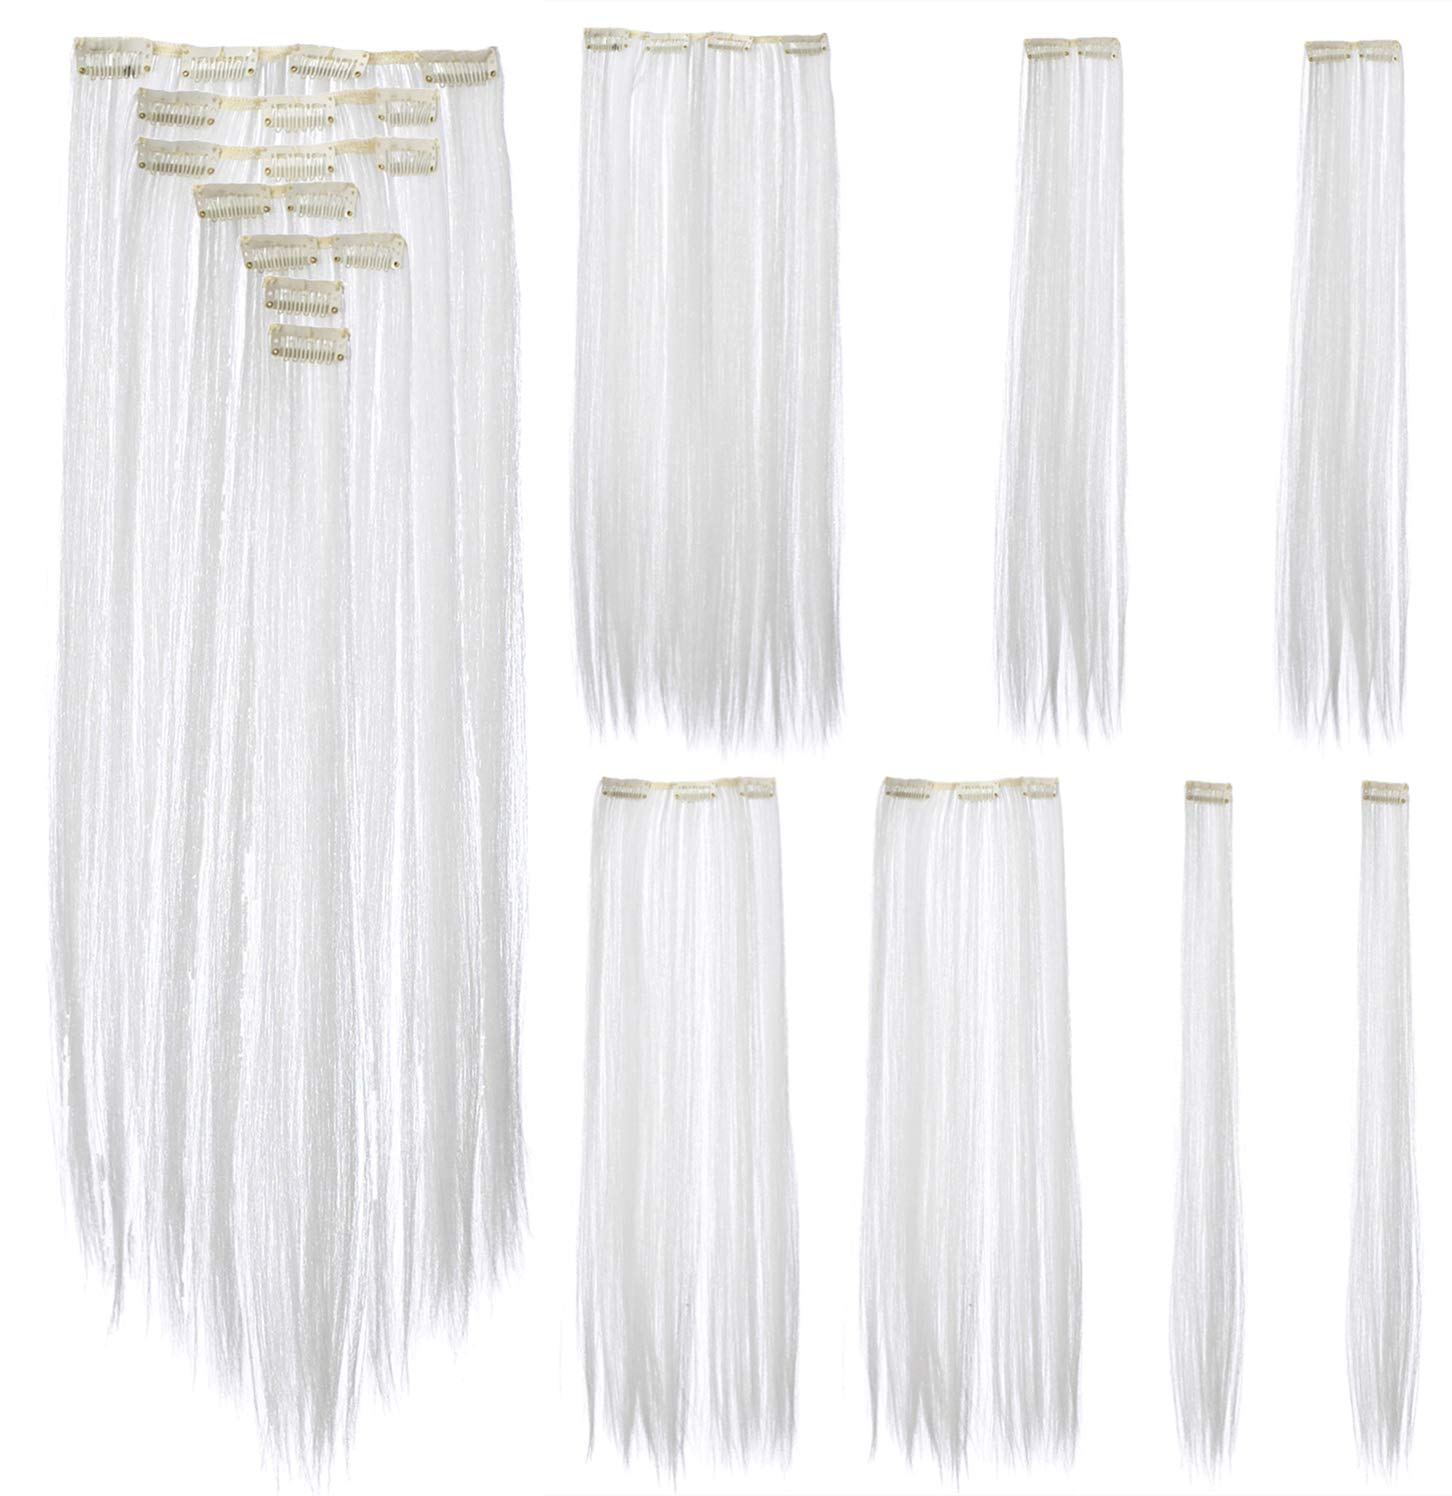 SWACC 7 Pcs Full Head Party Highlights Clip on in Hair Extensions Colored Hair Streak Synthetic Hairpieces (22-Inch Straight, White) by SWACC